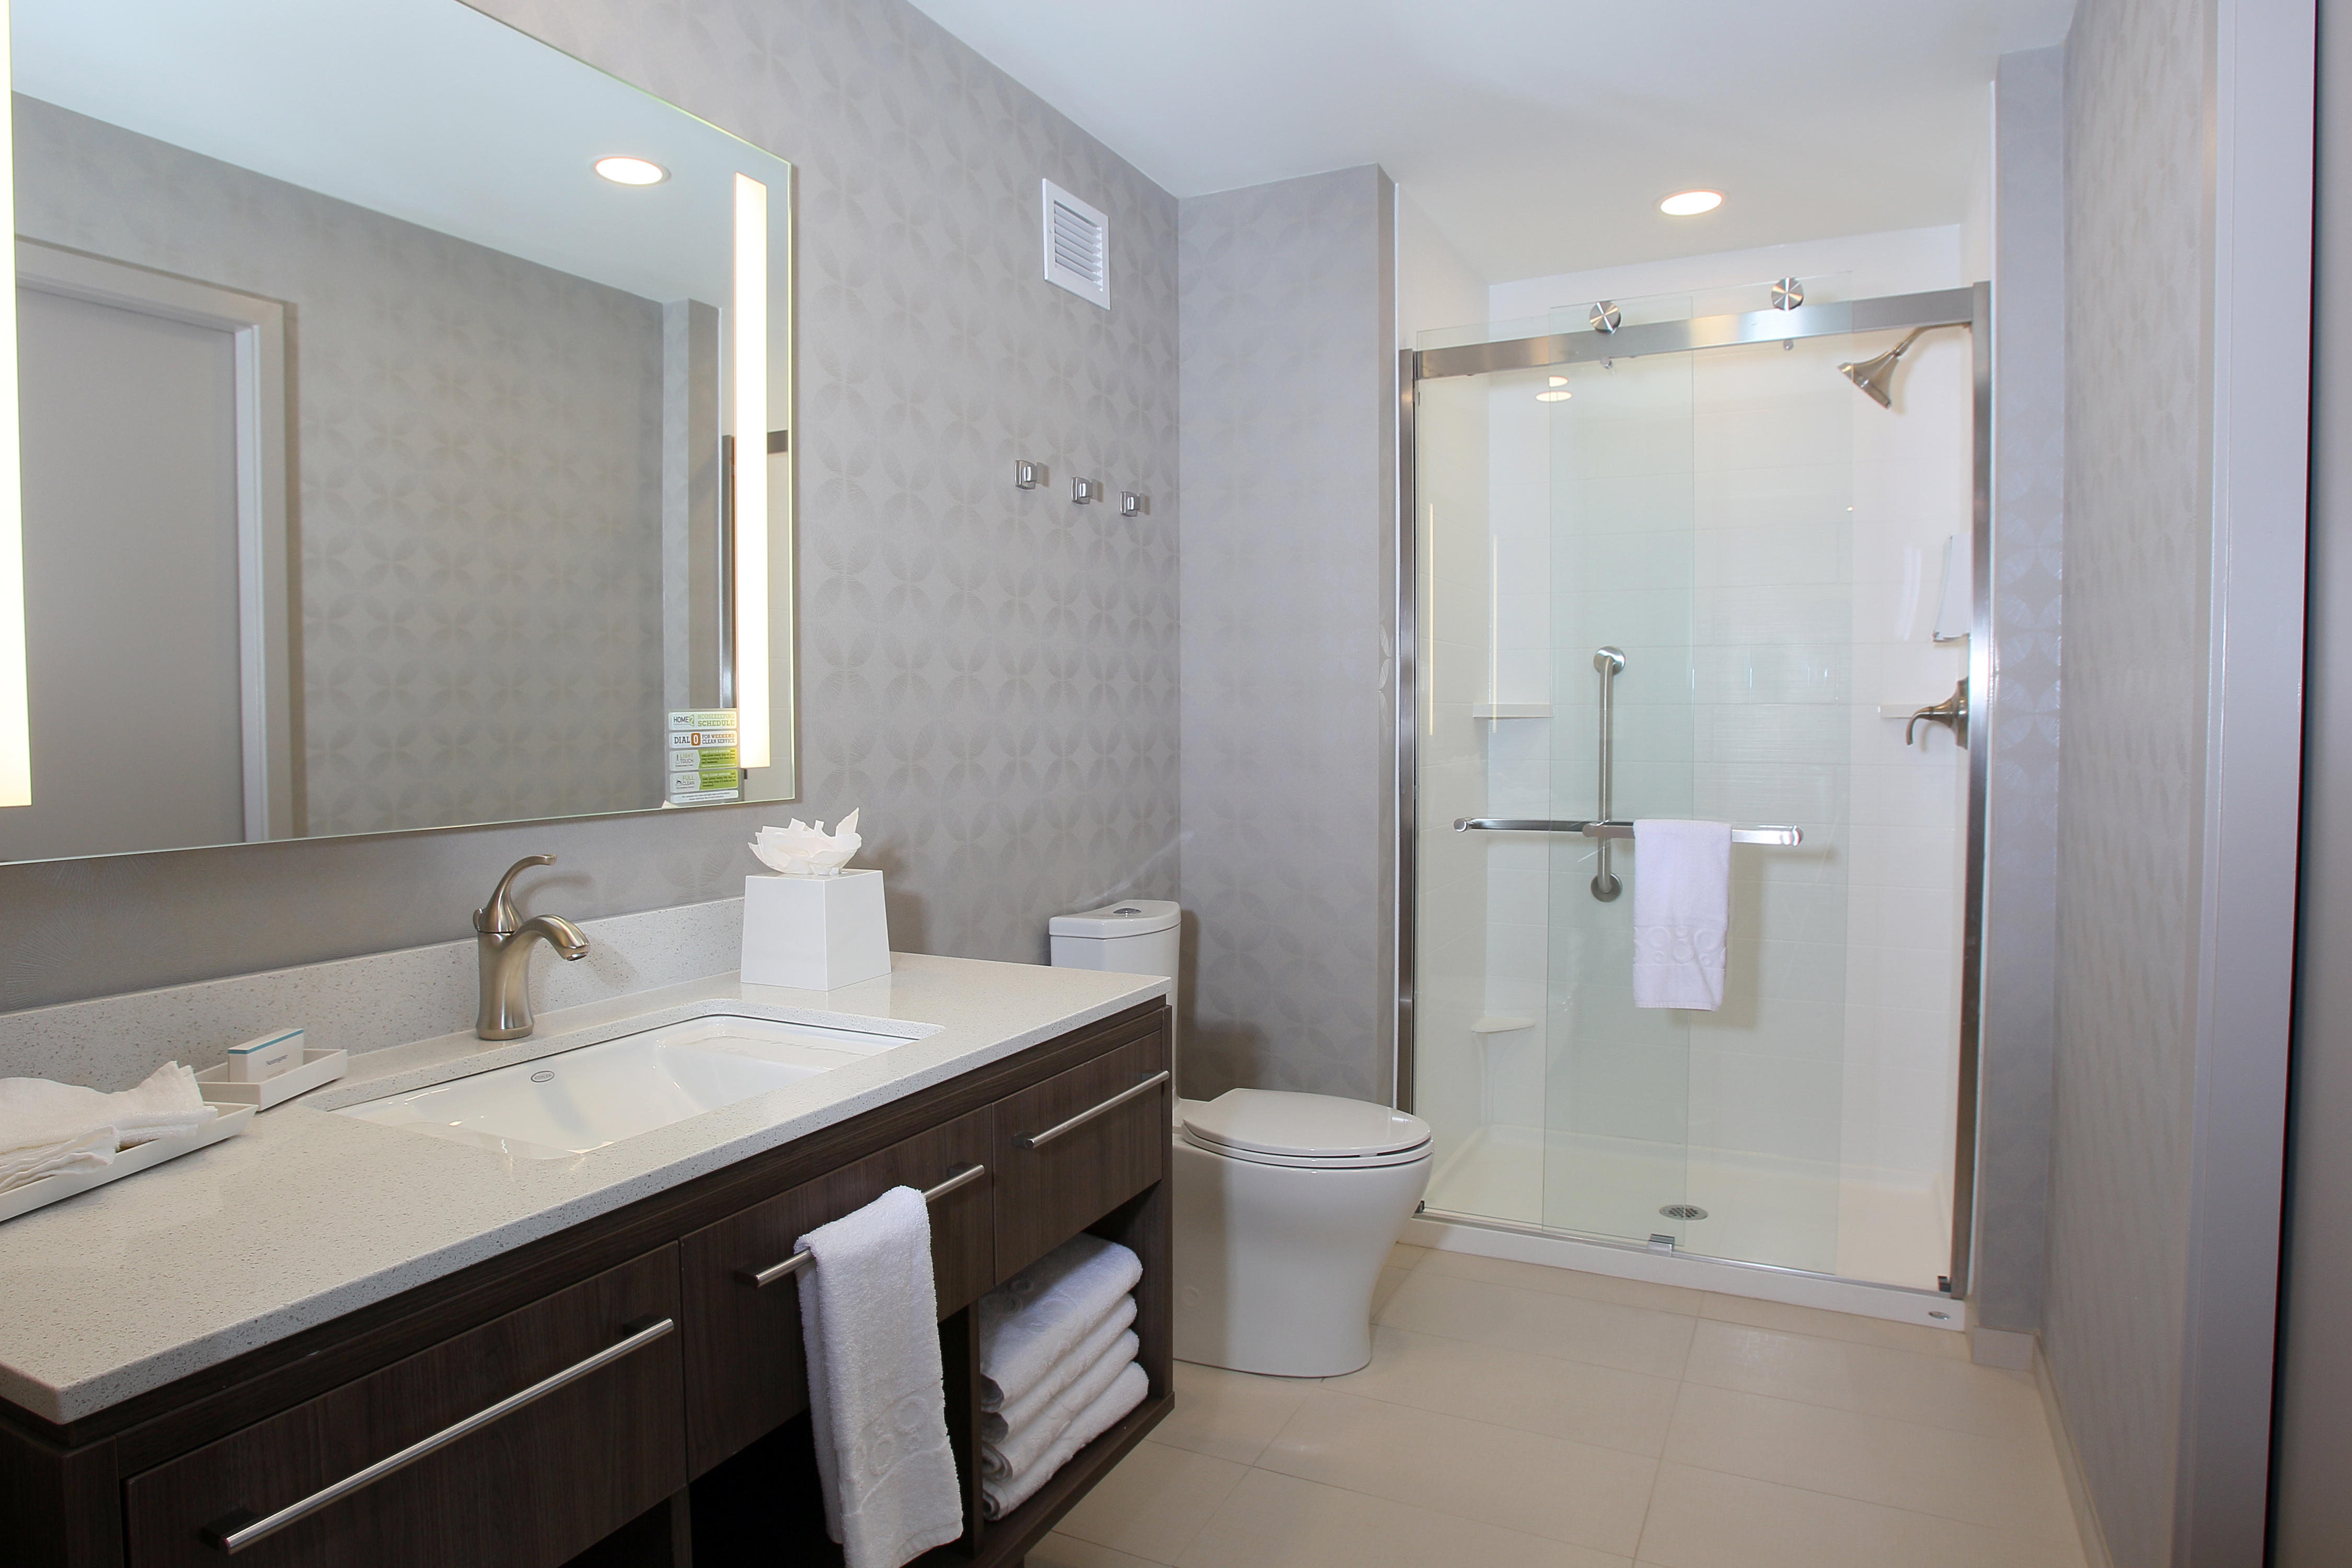 Home2 Suites by Hilton Nampa image 0